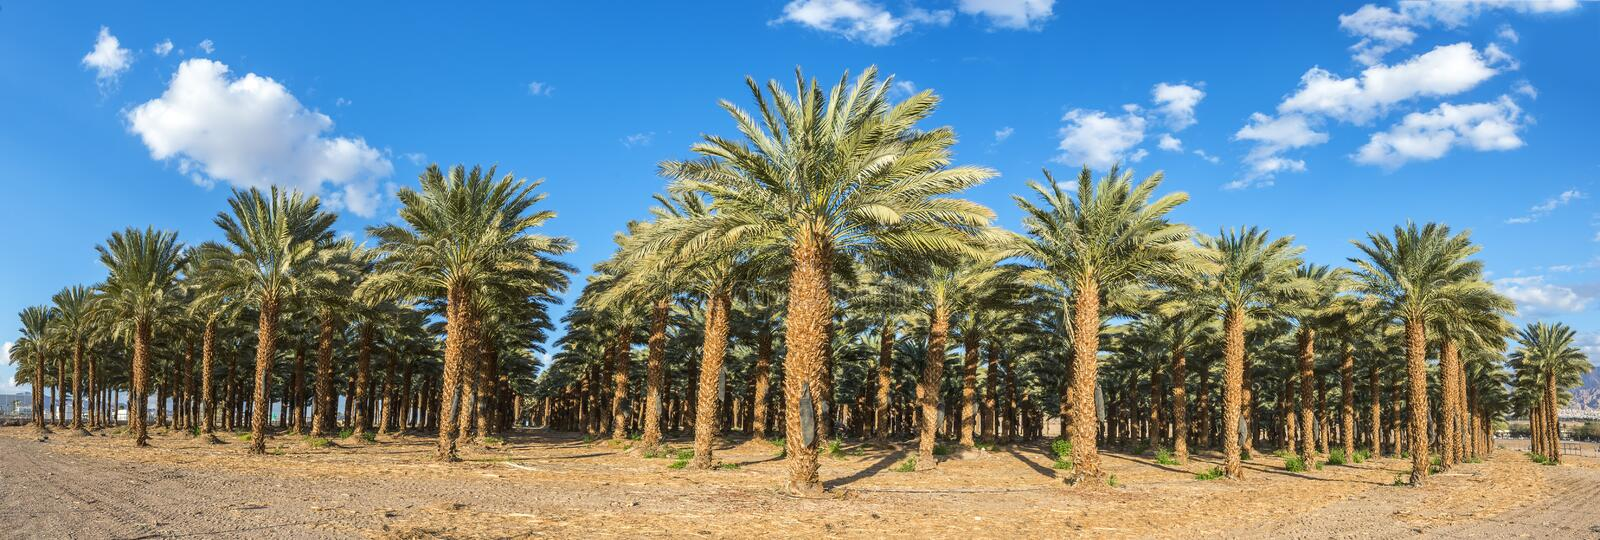 Plantation of date palms. Date palms have an important place in advanced desert agriculture in the Middle East royalty free stock images